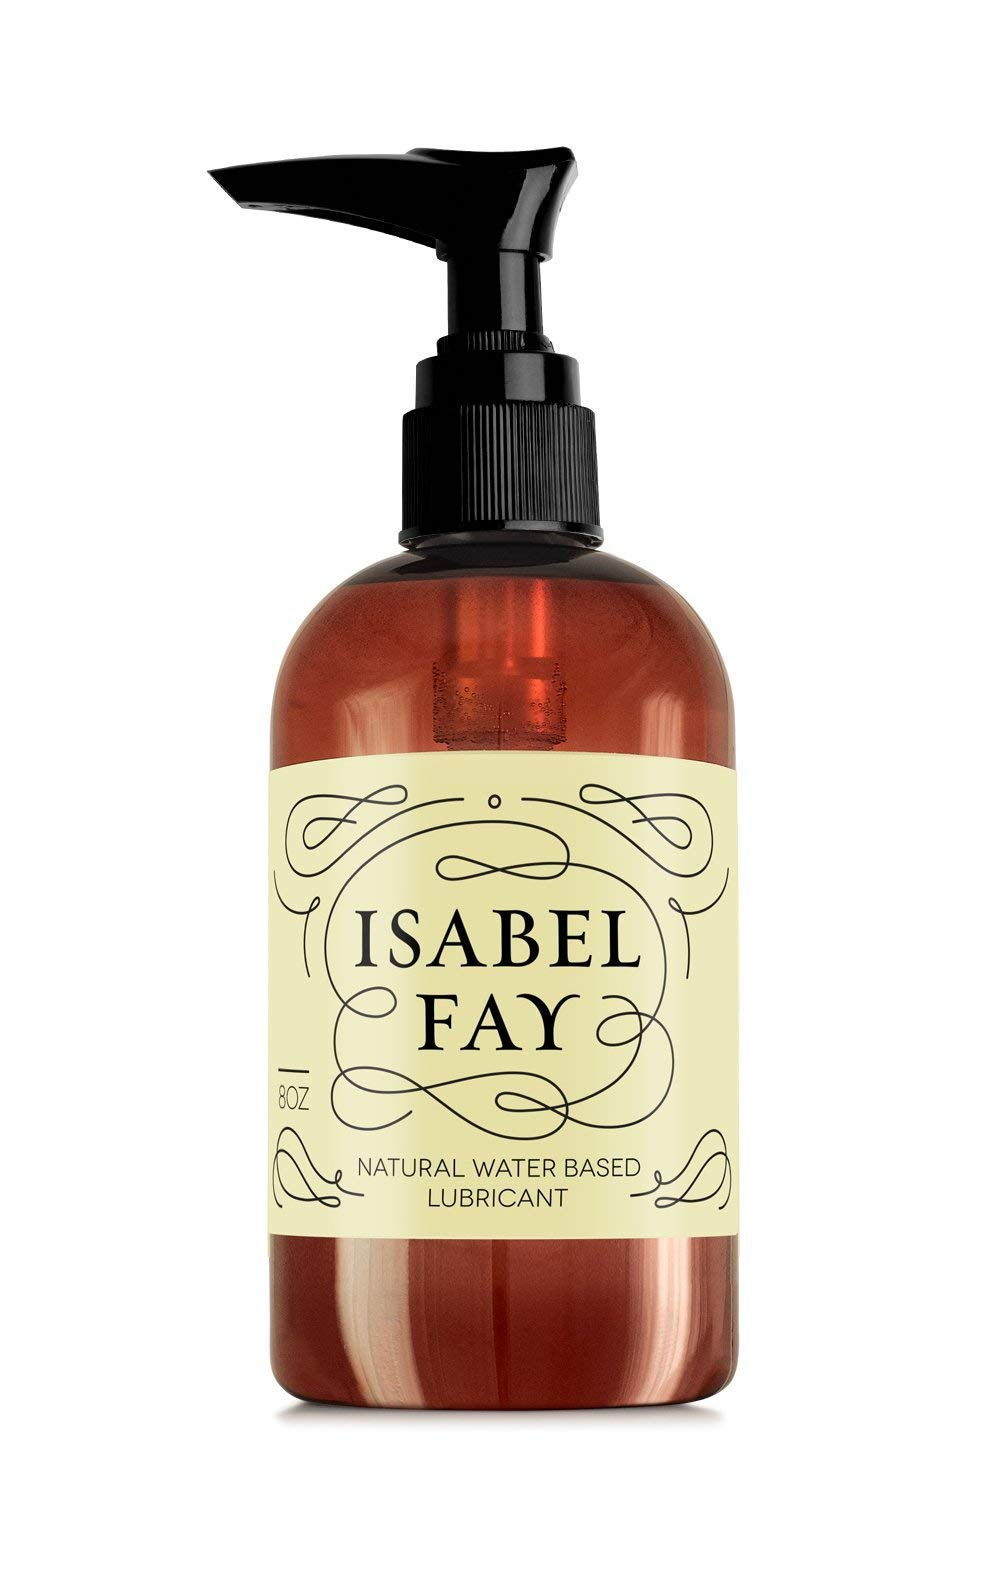 Intimate Lubricant Sensitive Isabel Fay